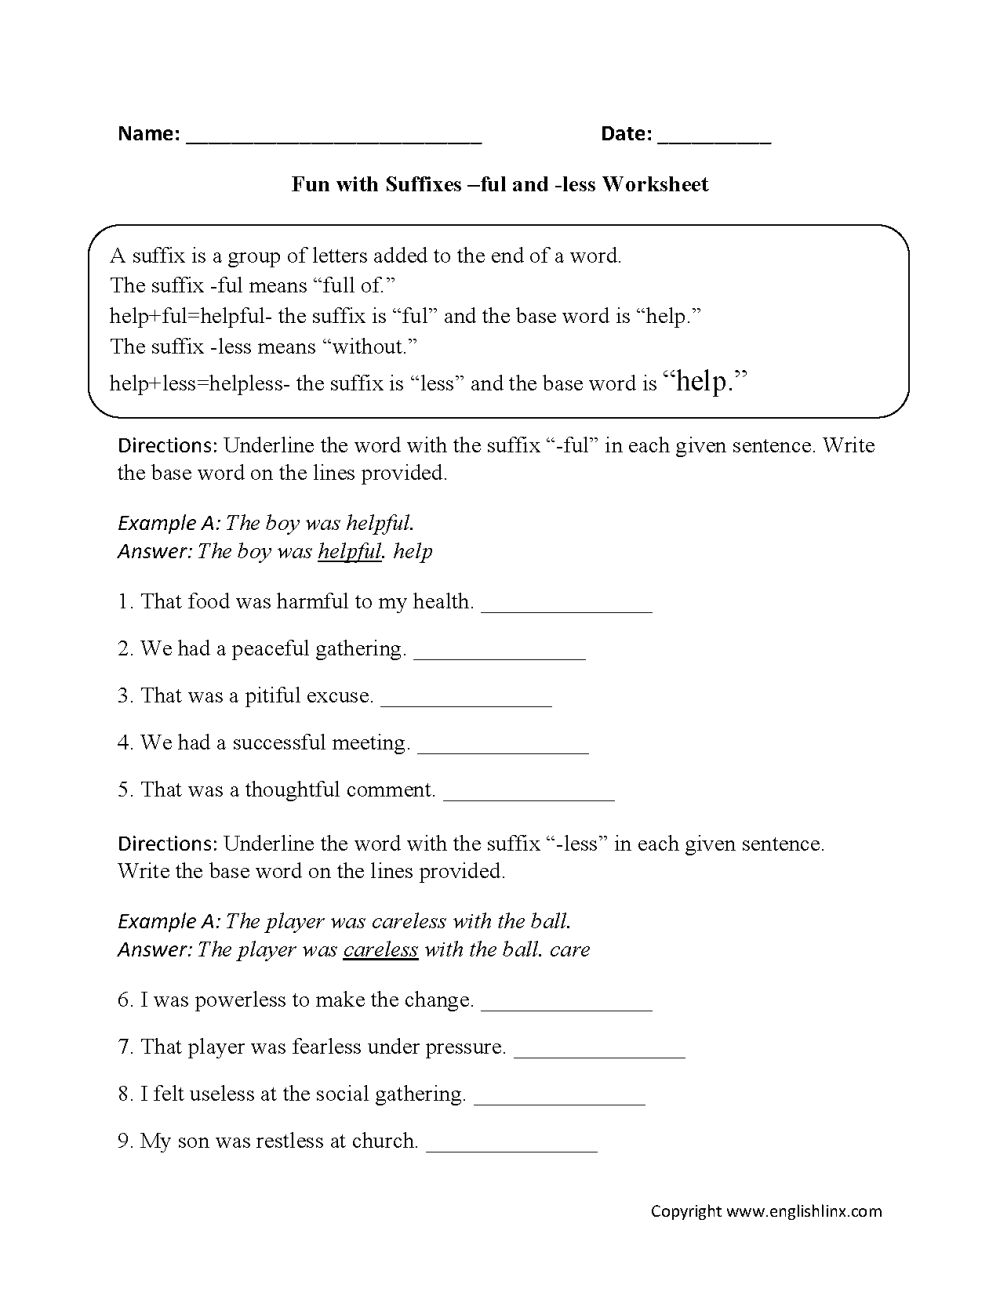 medium resolution of Suffixes Worksheets   Fun with Suffixes -ful and -less Worksheets